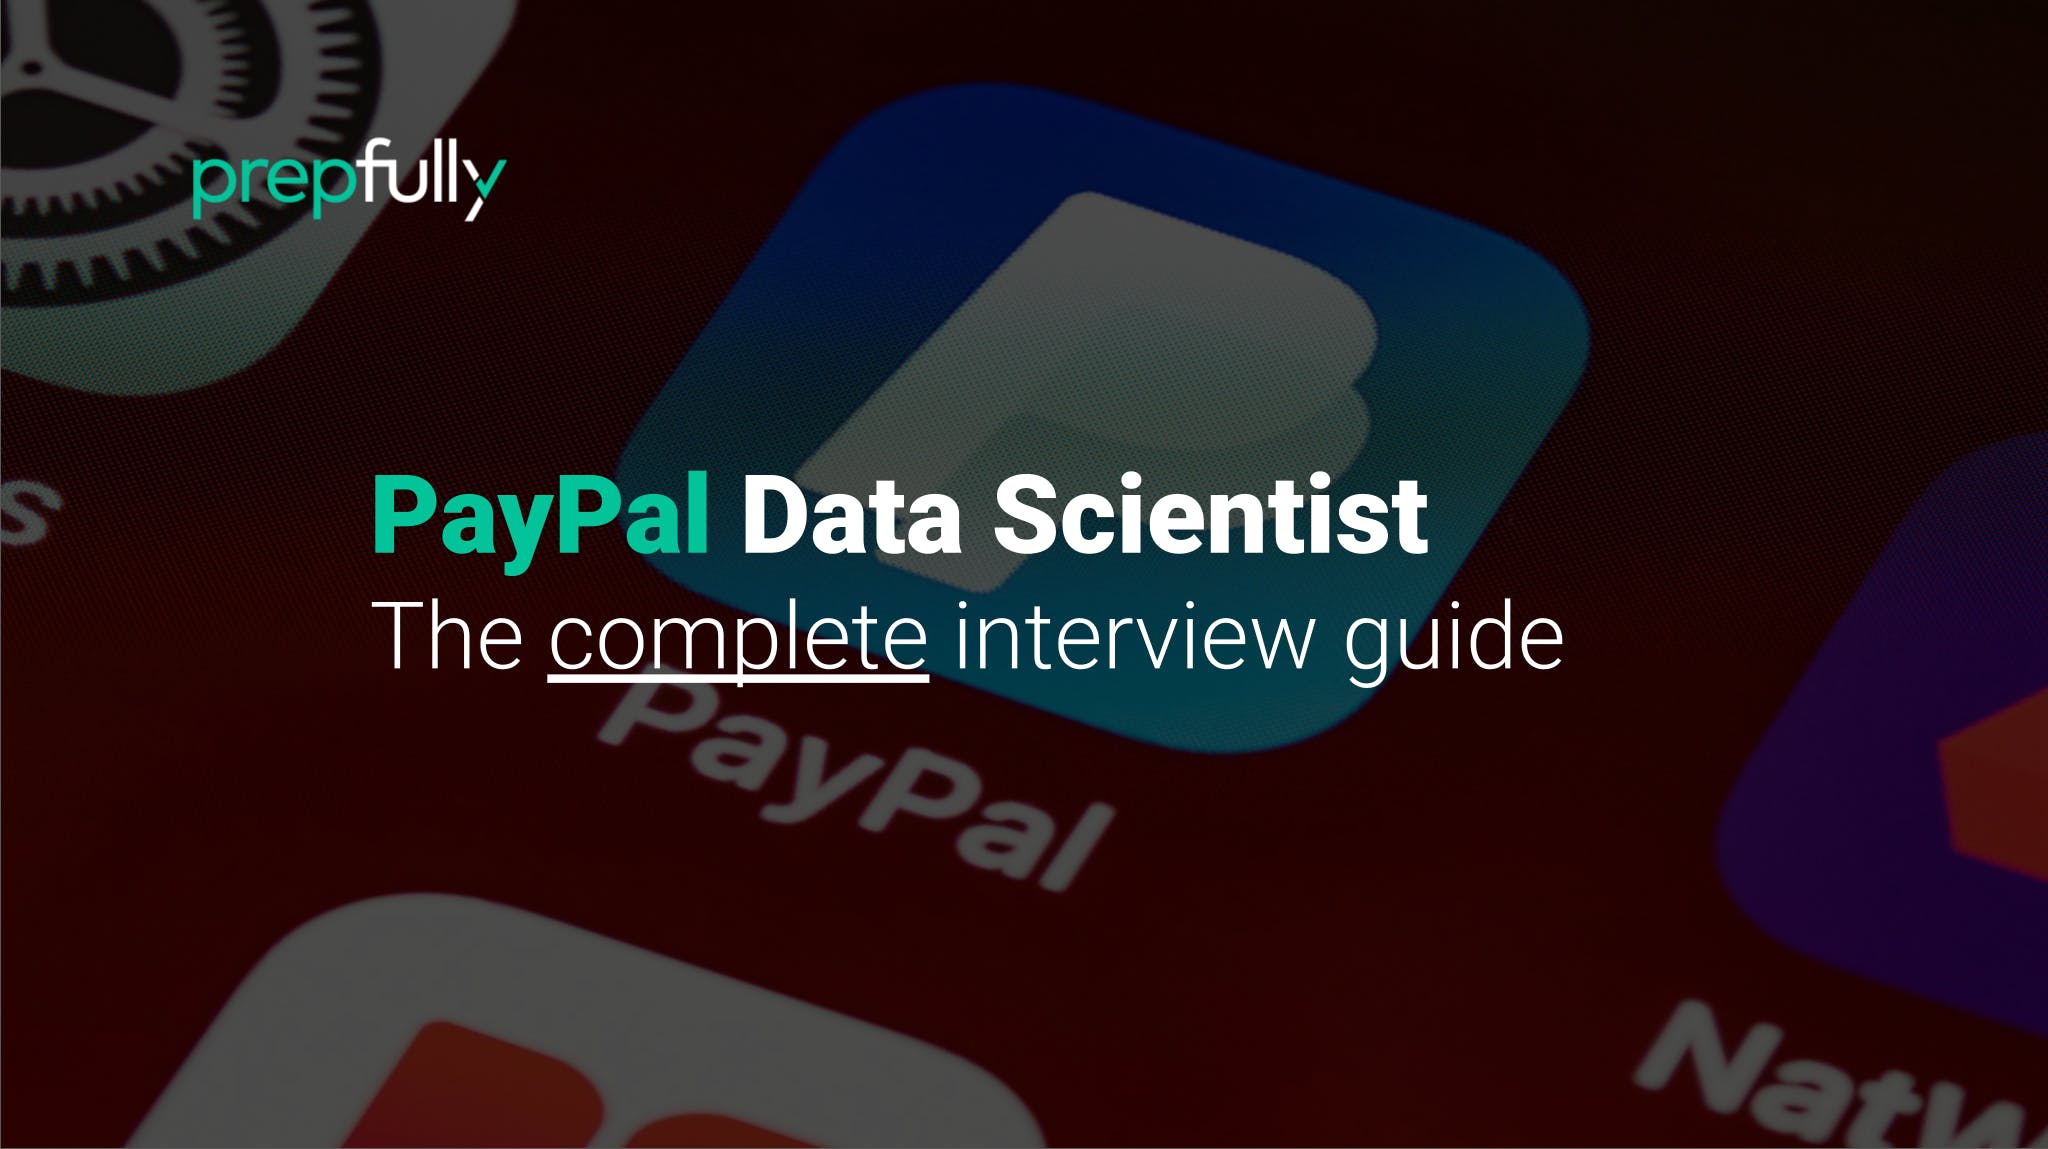 Interview guide for PayPal Data Scientist